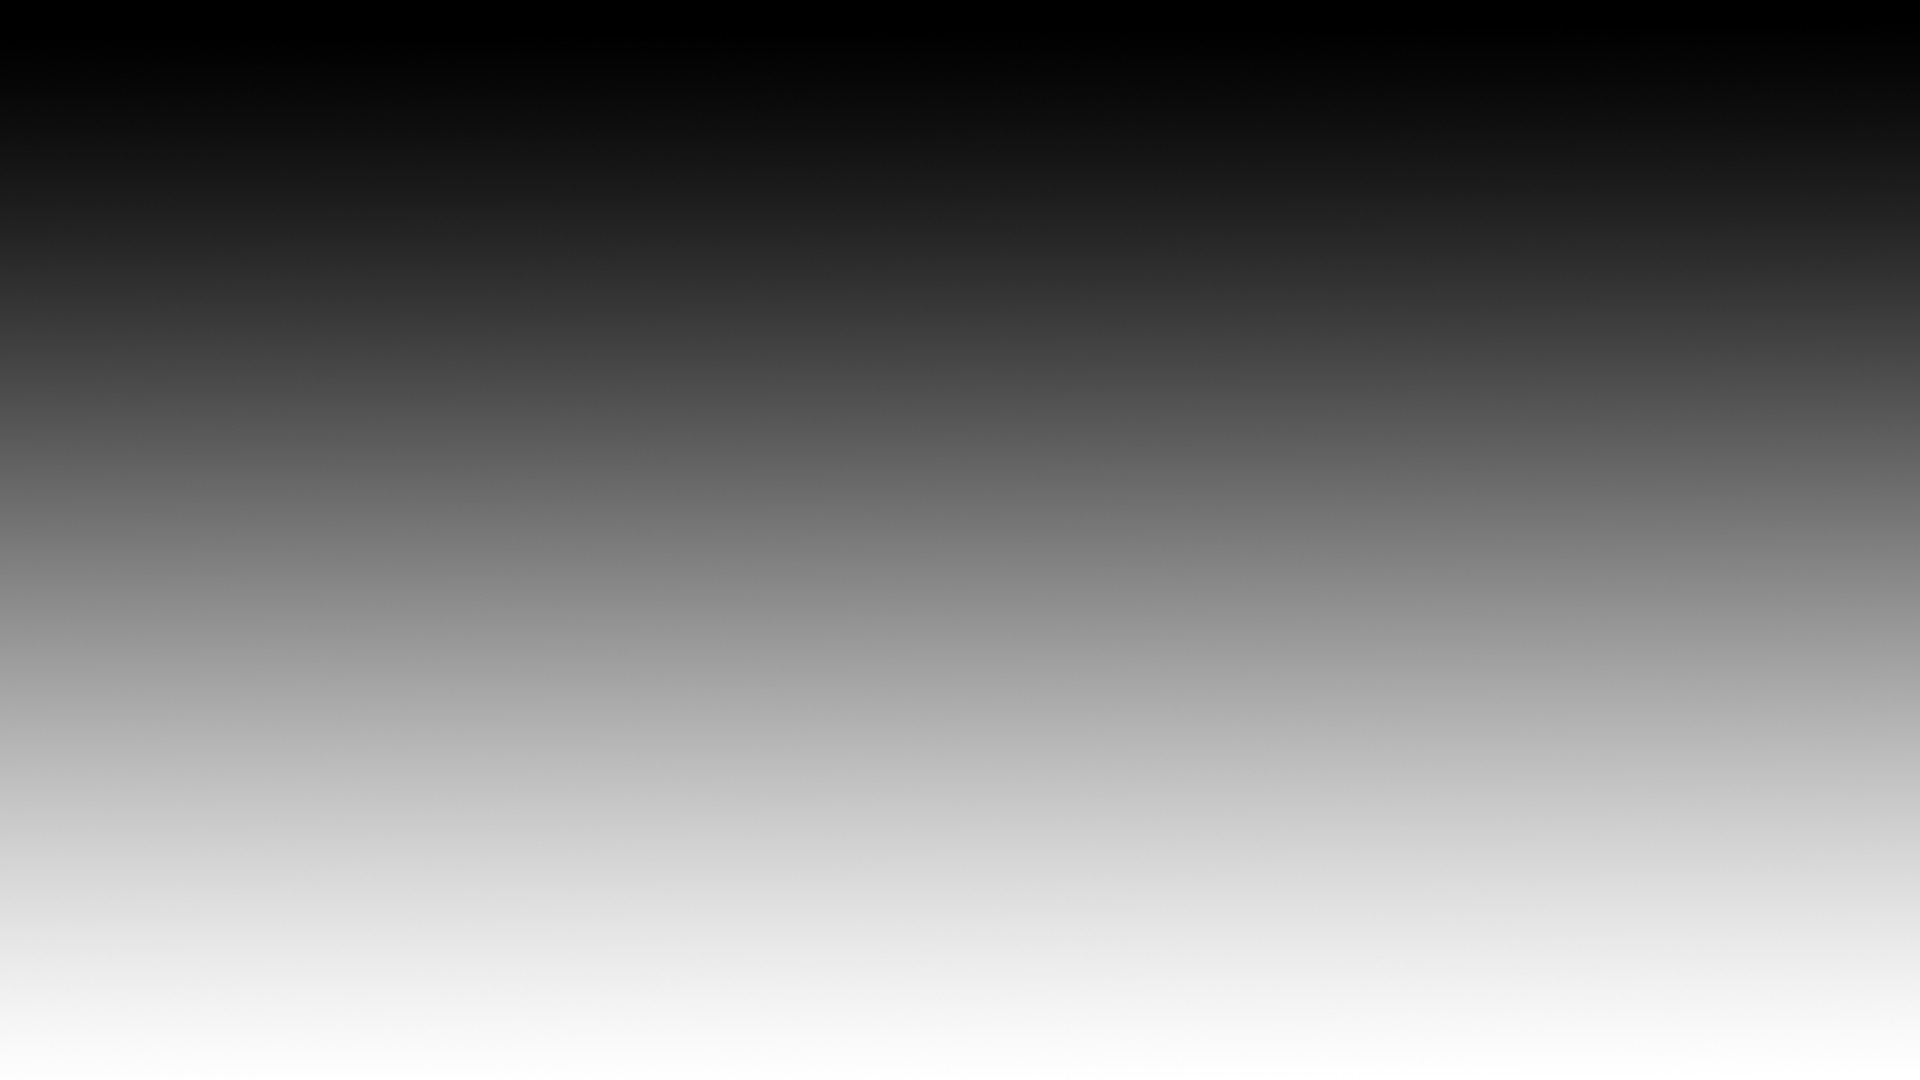 1920x1080 Nothing found for Black-and-gray-silver-gradient-desktop-wallpaper